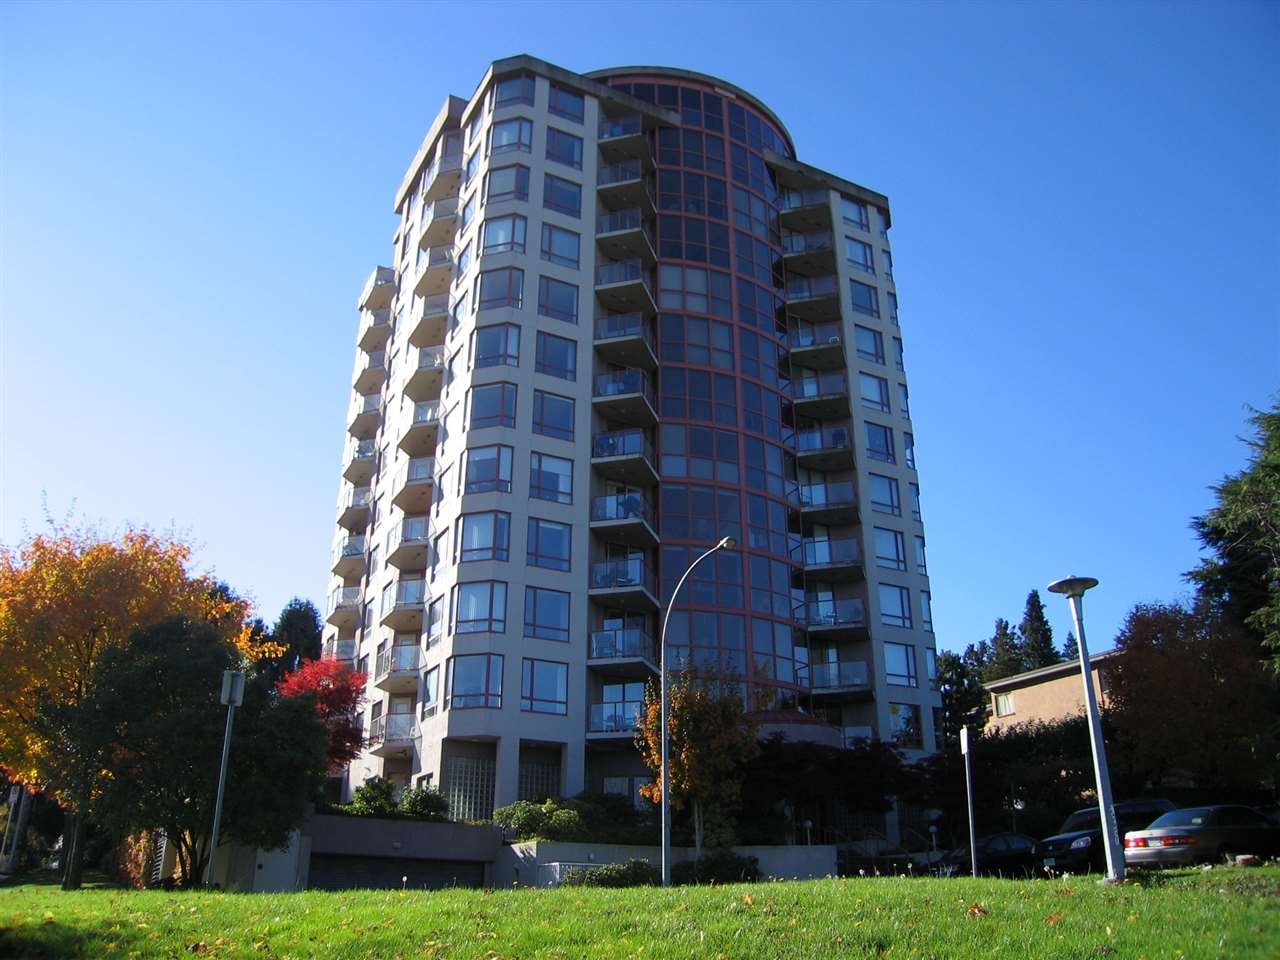 Main Photo: 301 38 LEOPOLD Place in New Westminster: Downtown NW Condo for sale : MLS®# R2053804